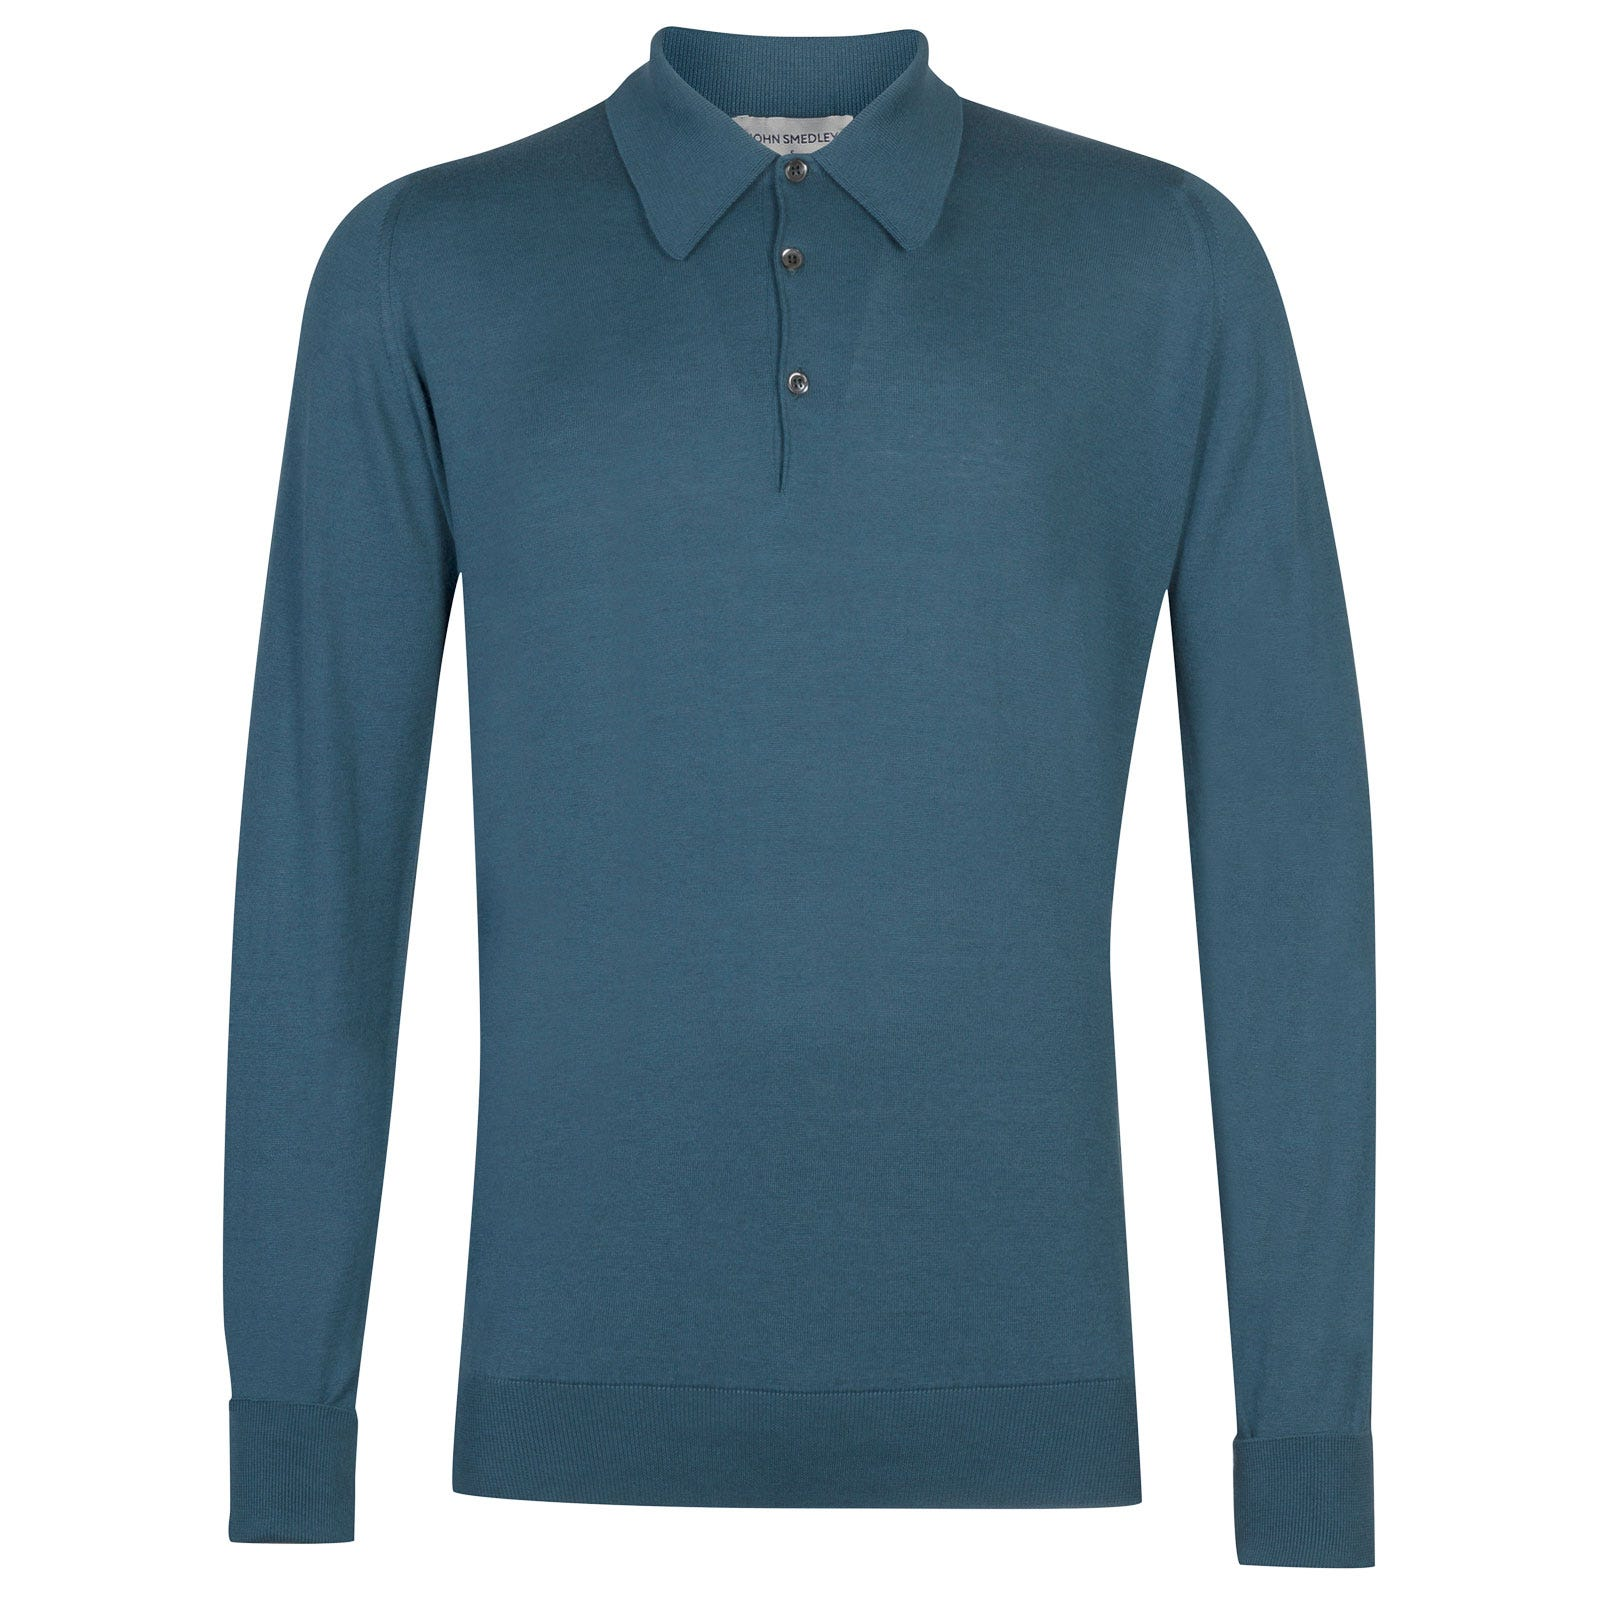 John Smedley Finchley Sea Island Cotton Shirt in Bias Blue-XL